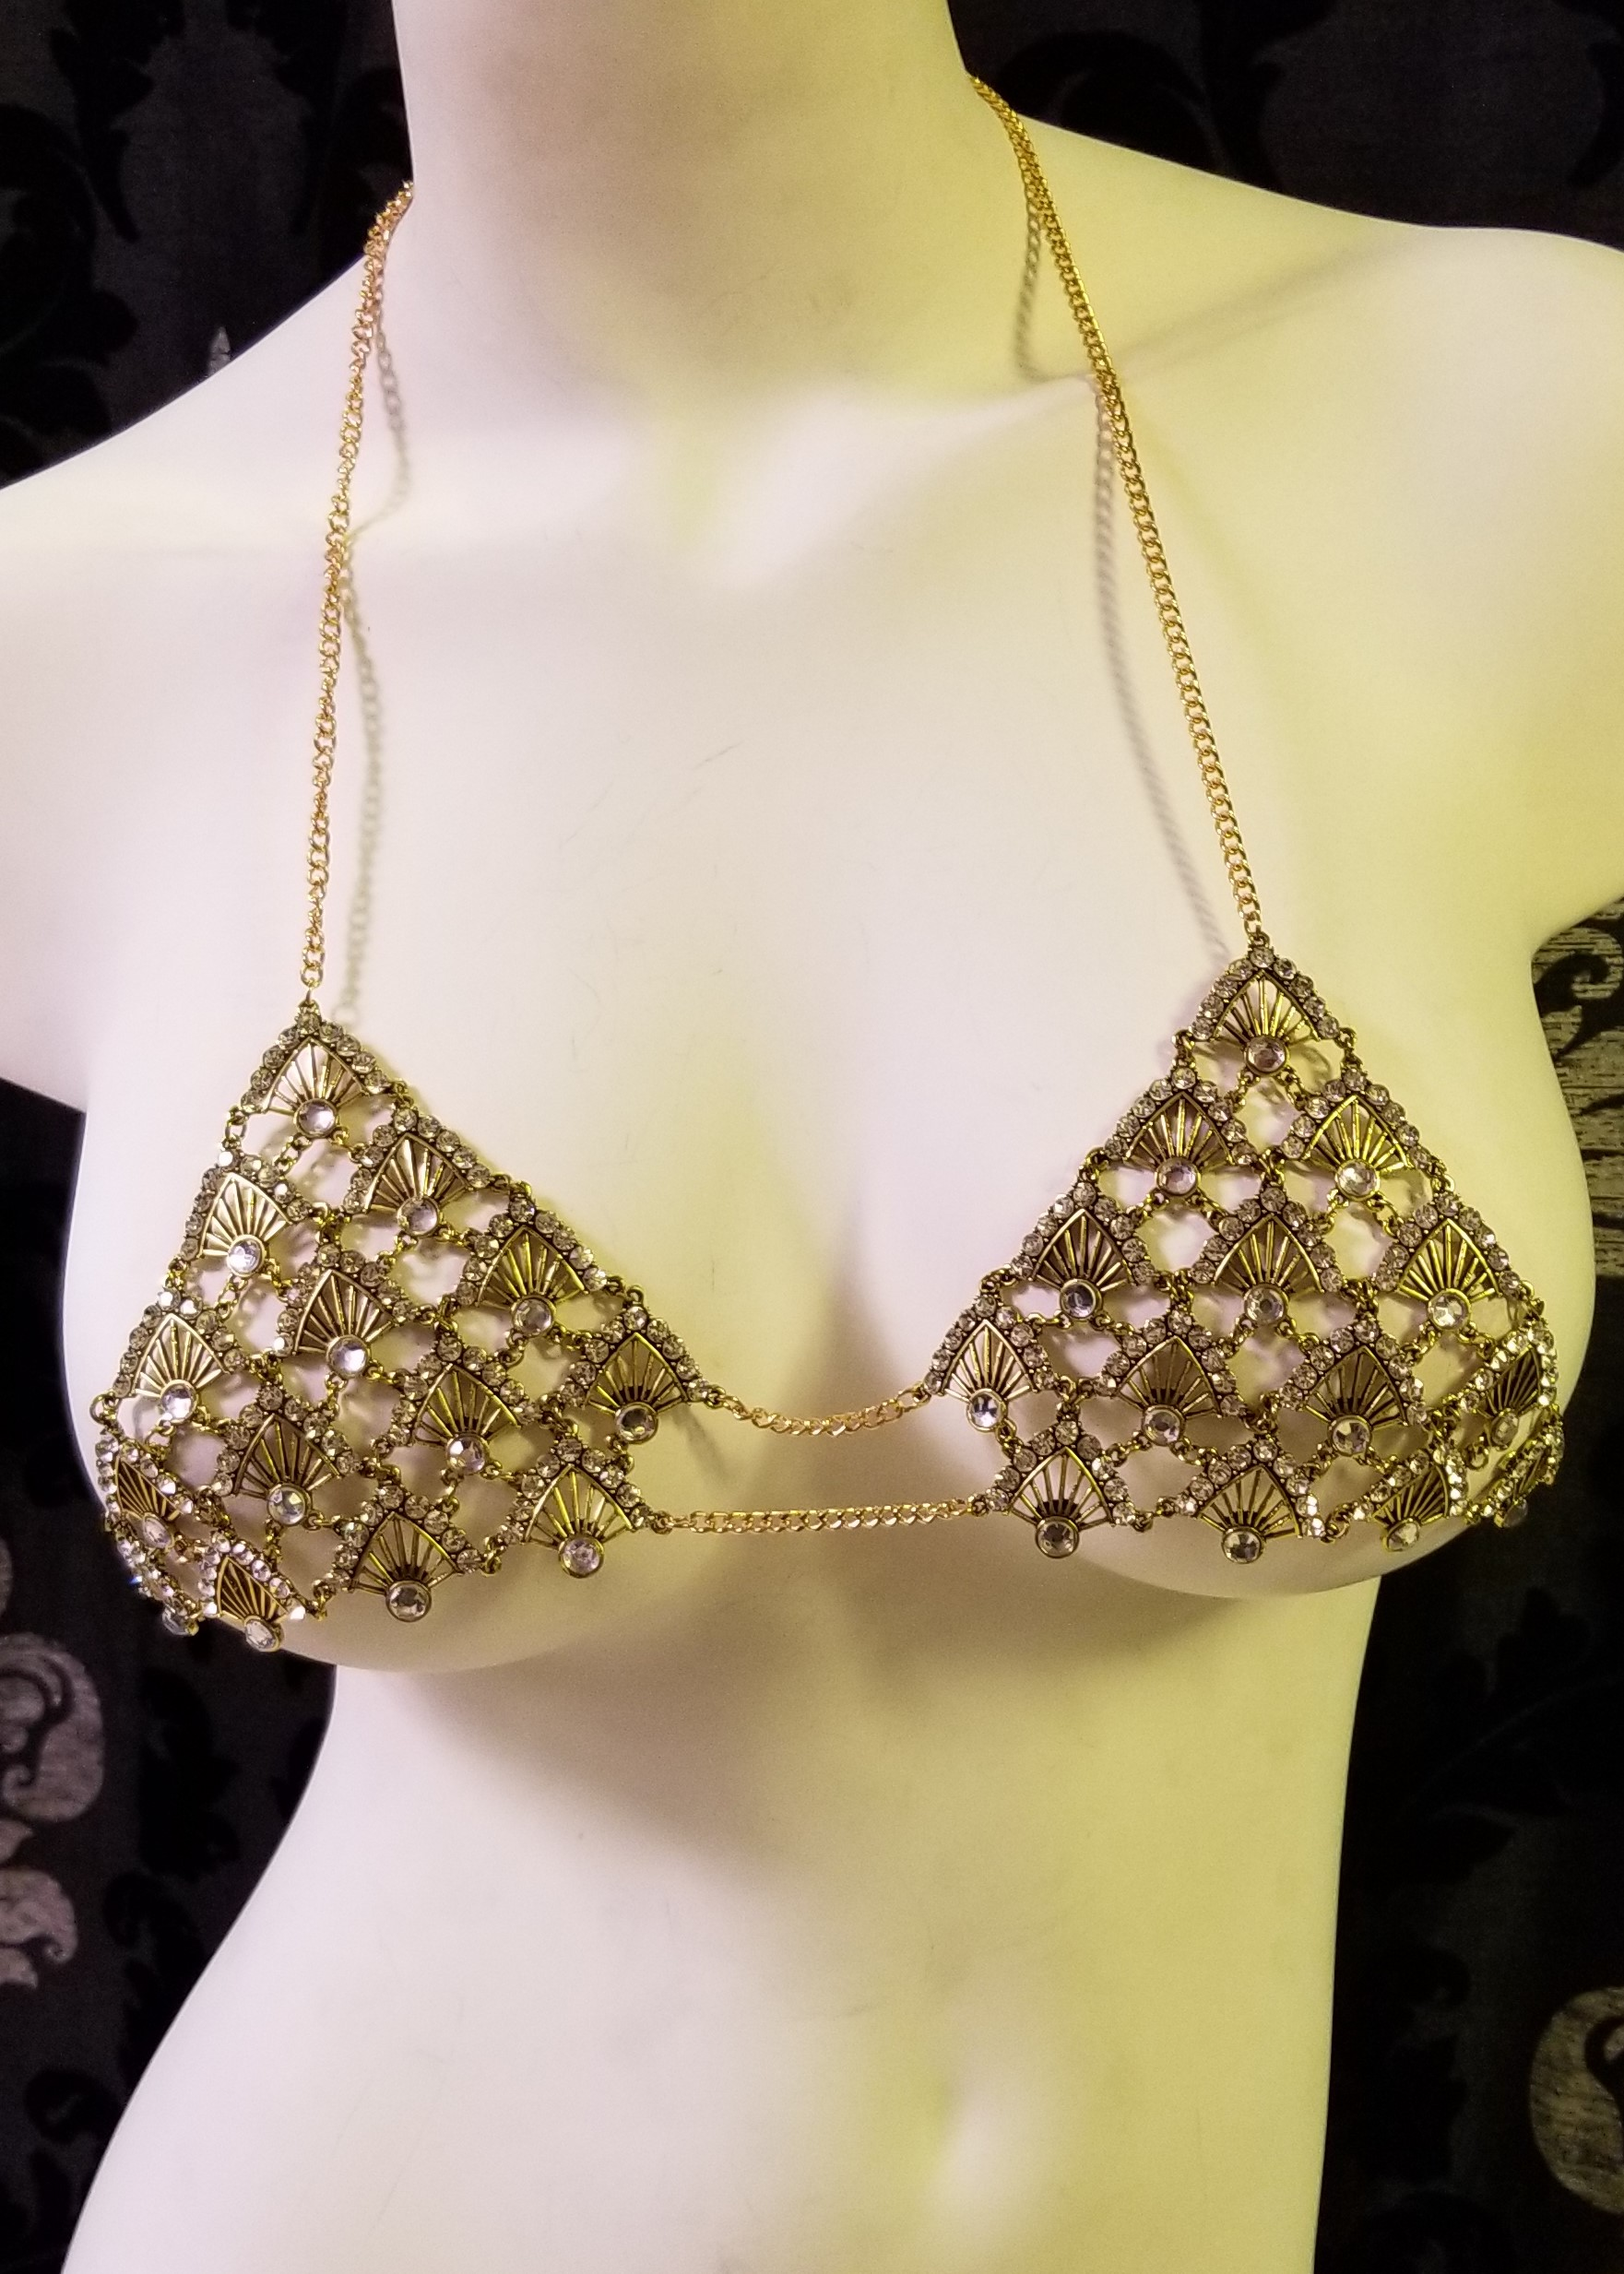 Rhinestone bra adjustable back gold 0798 Edmonton